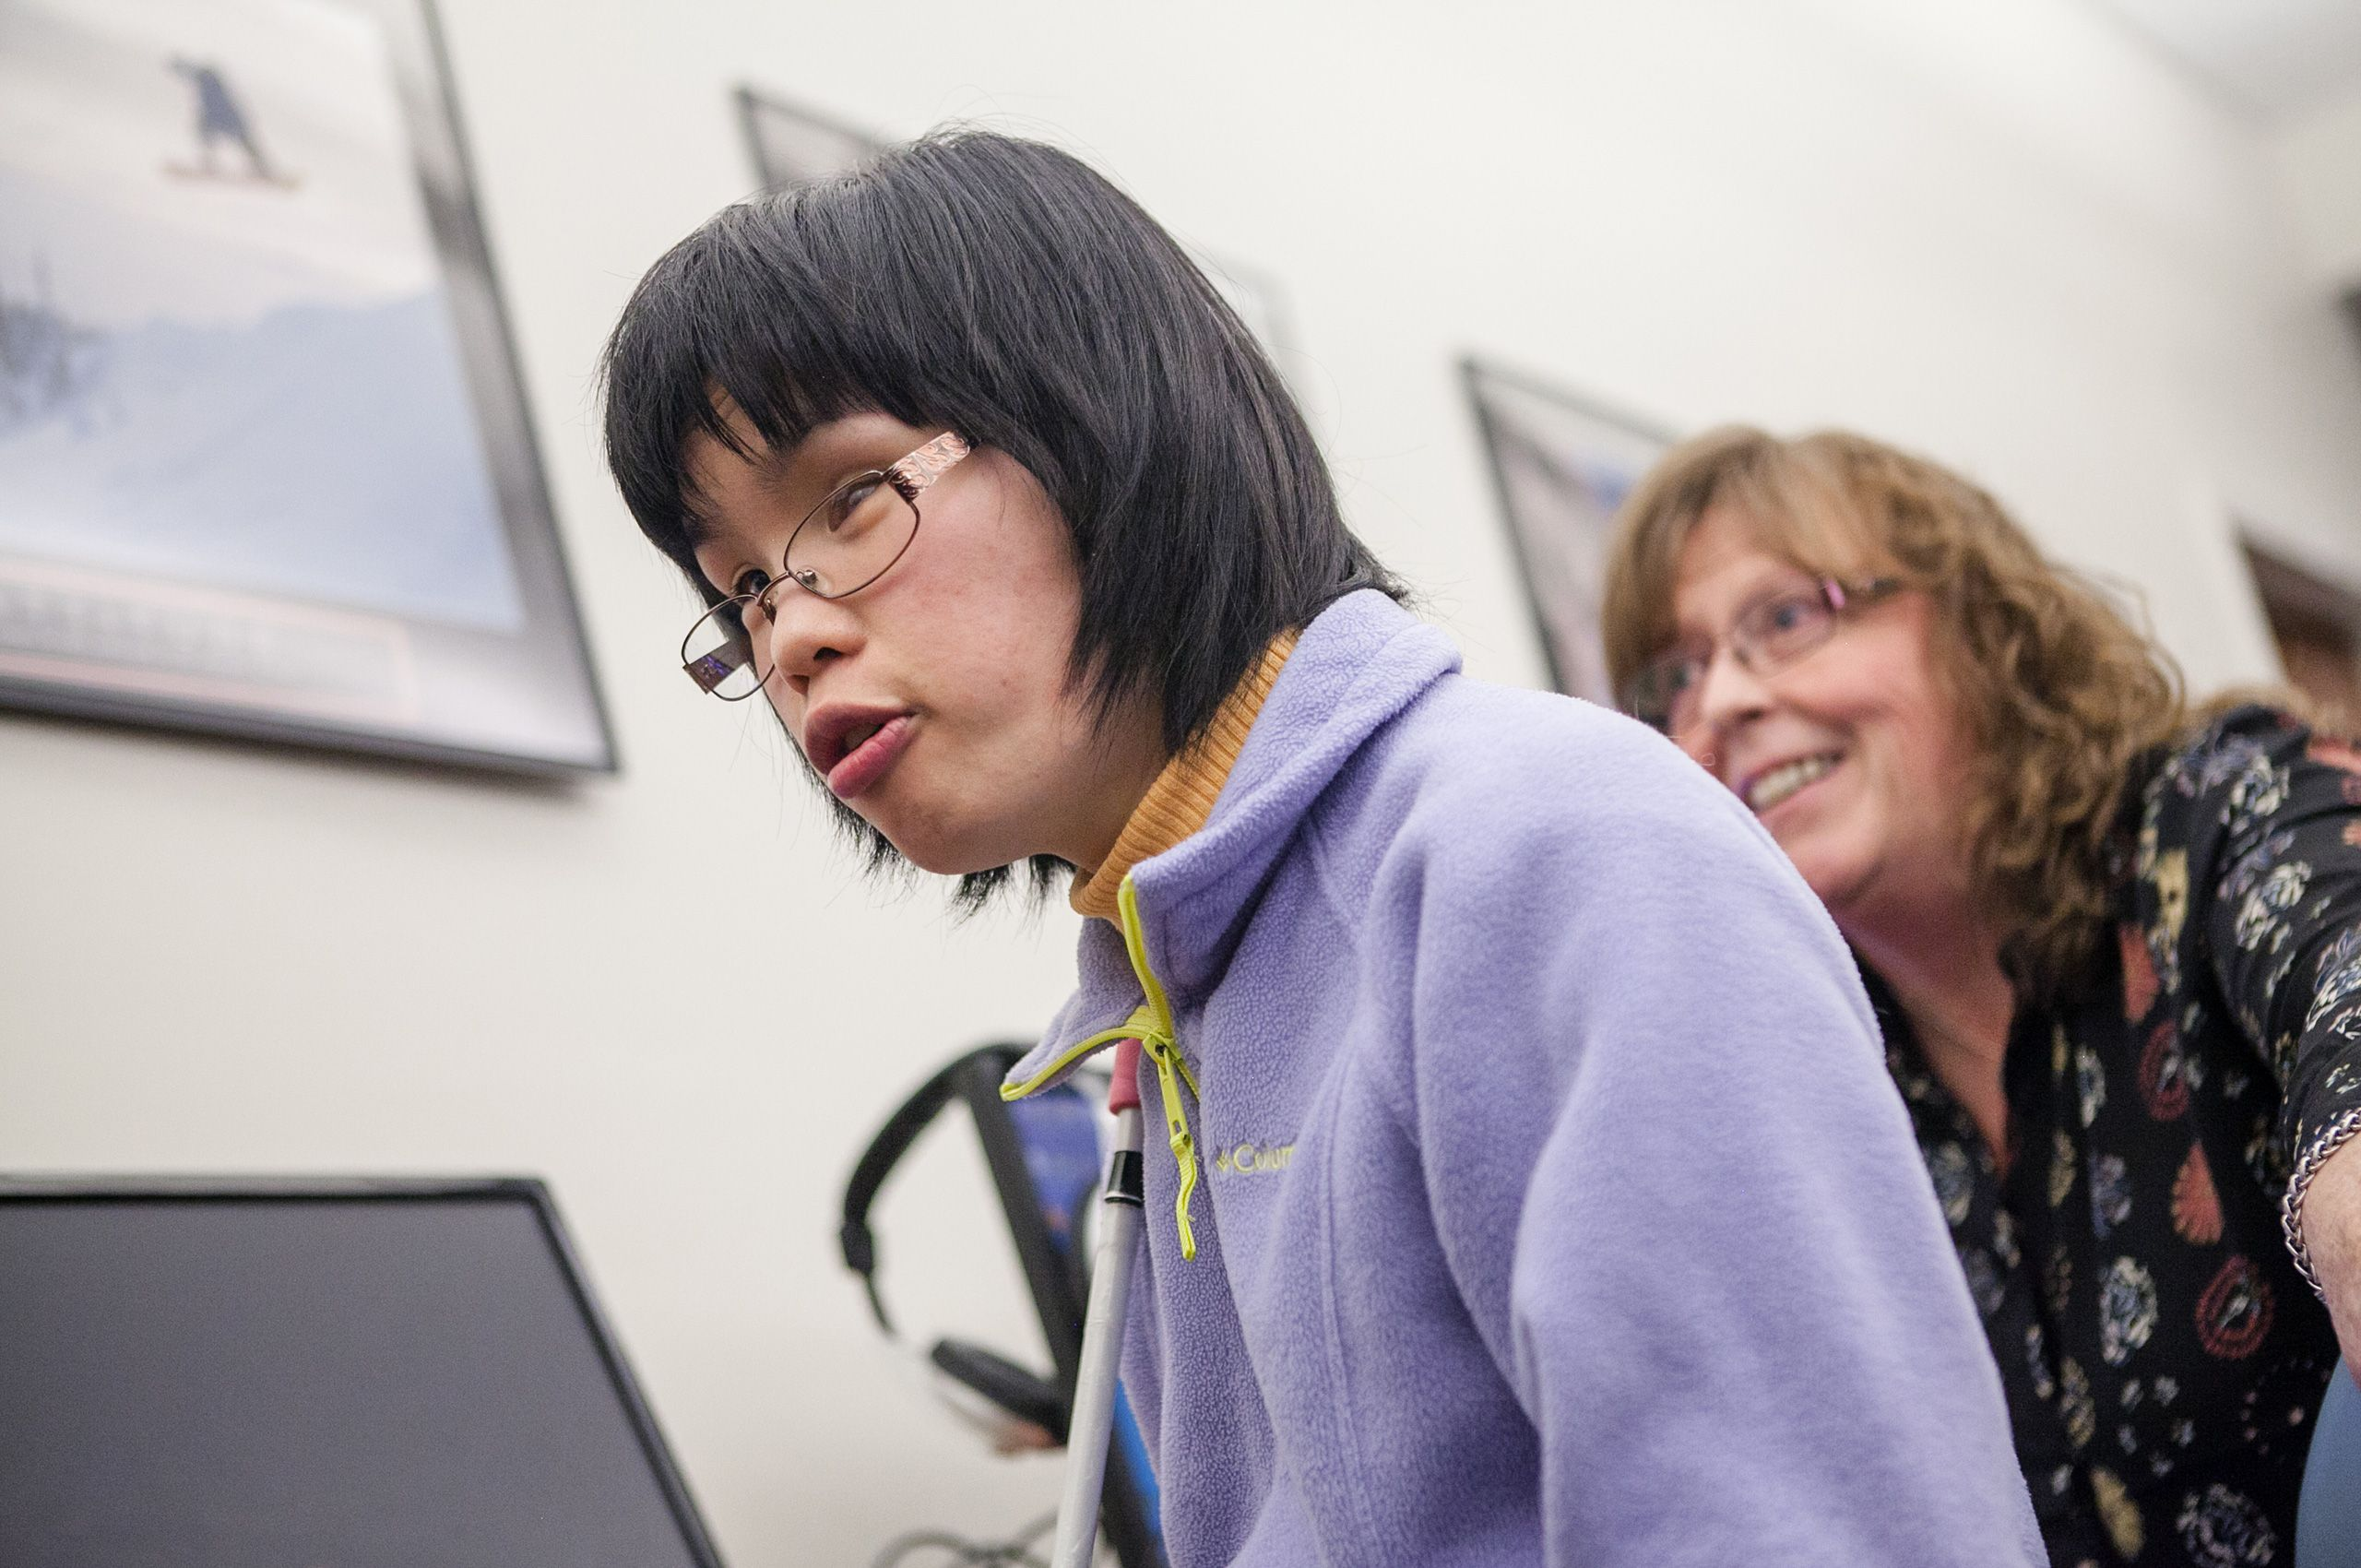 The Price Center supports people with developmental and intellectual disabilities.